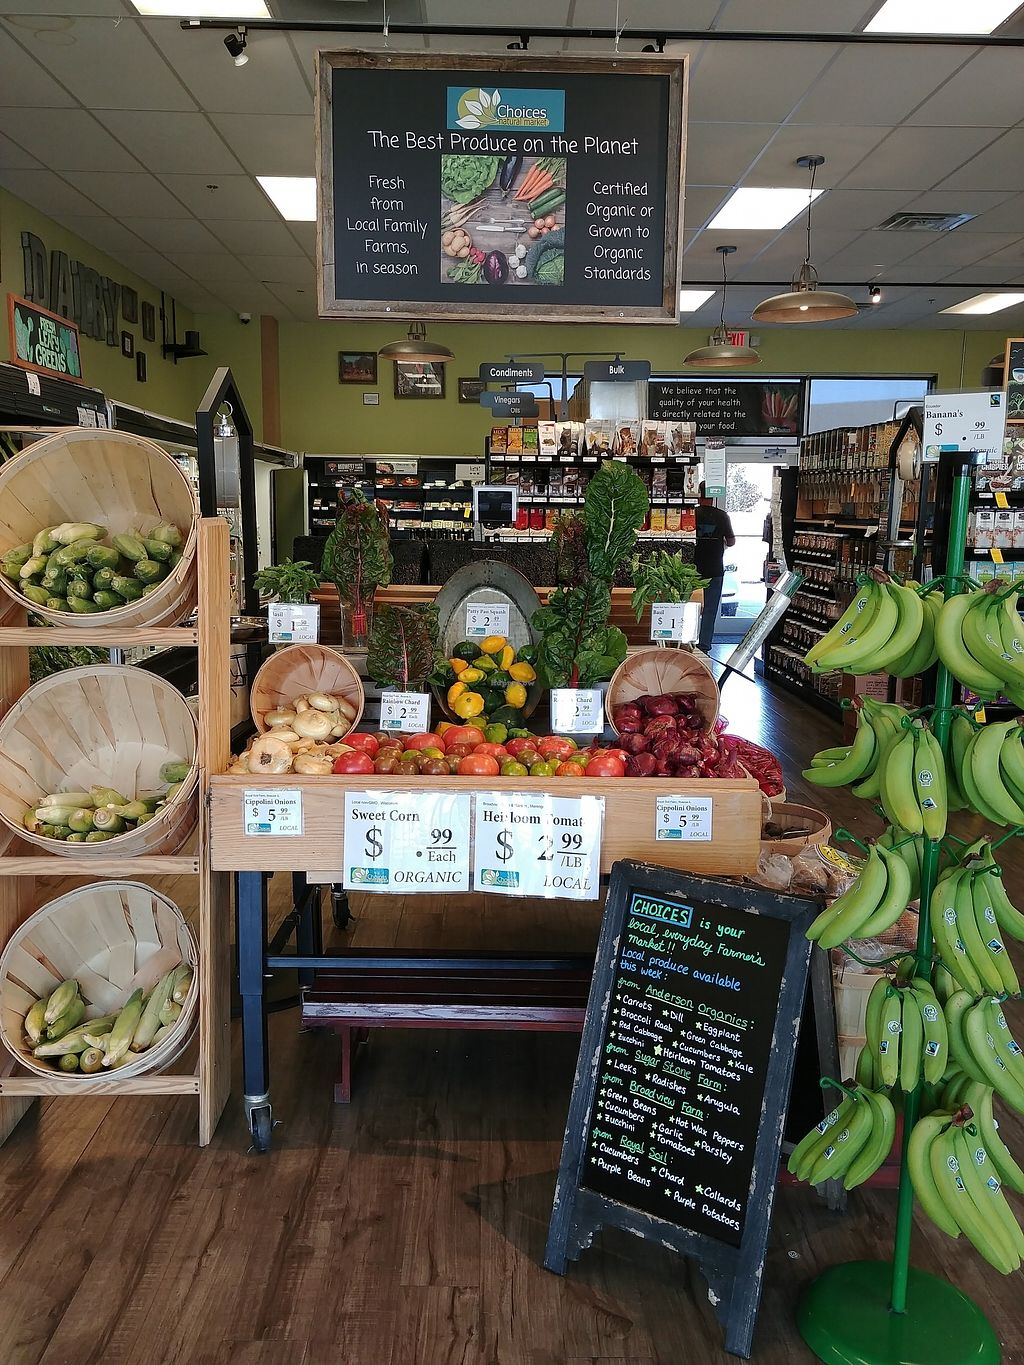 """Photo of Choices Natural Market  by <a href=""""/members/profile/PlantSim"""">PlantSim</a> <br/>Yum! <br/> August 23, 2017  - <a href='/contact/abuse/image/9689/296203'>Report</a>"""